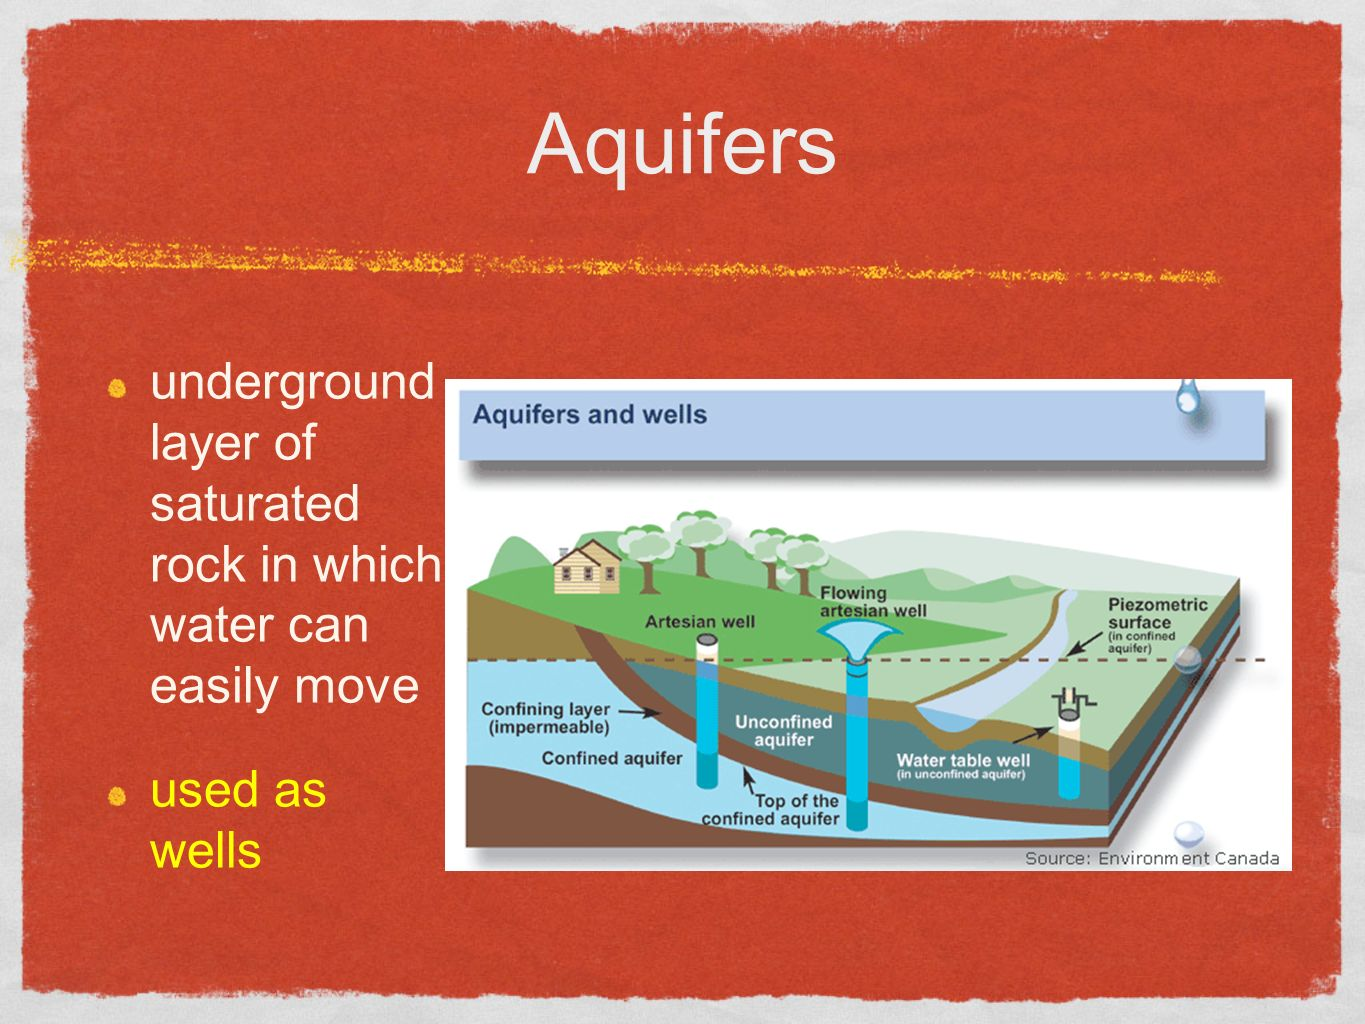 Aquifers underground layer of saturated rock in which water can easily move used as wells